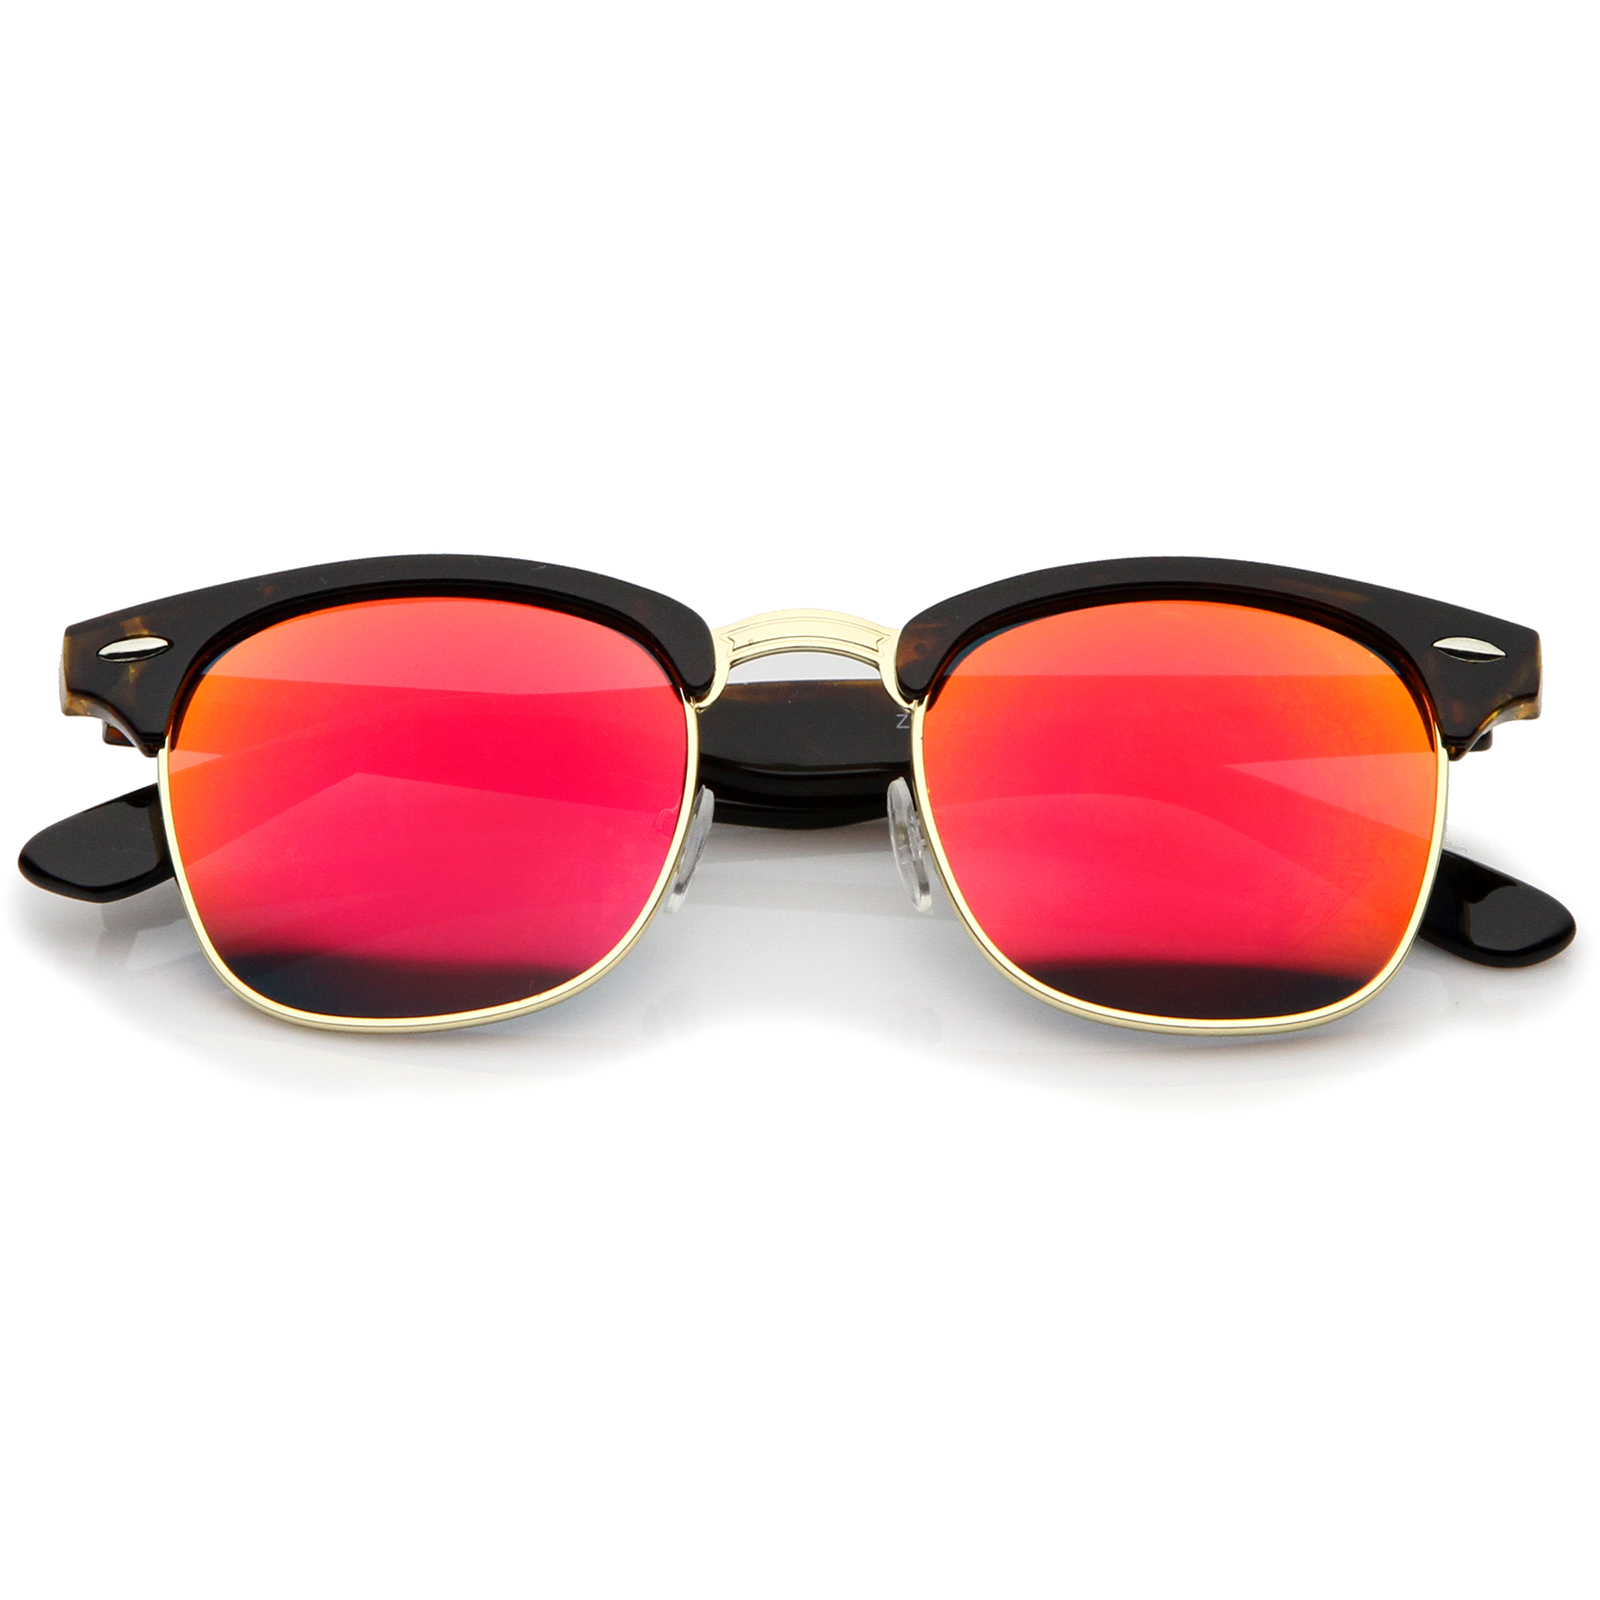 Mirrored Sunglasses Give your shades an upgrade with mirrored lenses! Available in two-tone and solid color options, these sunglasses will reflect your best views.